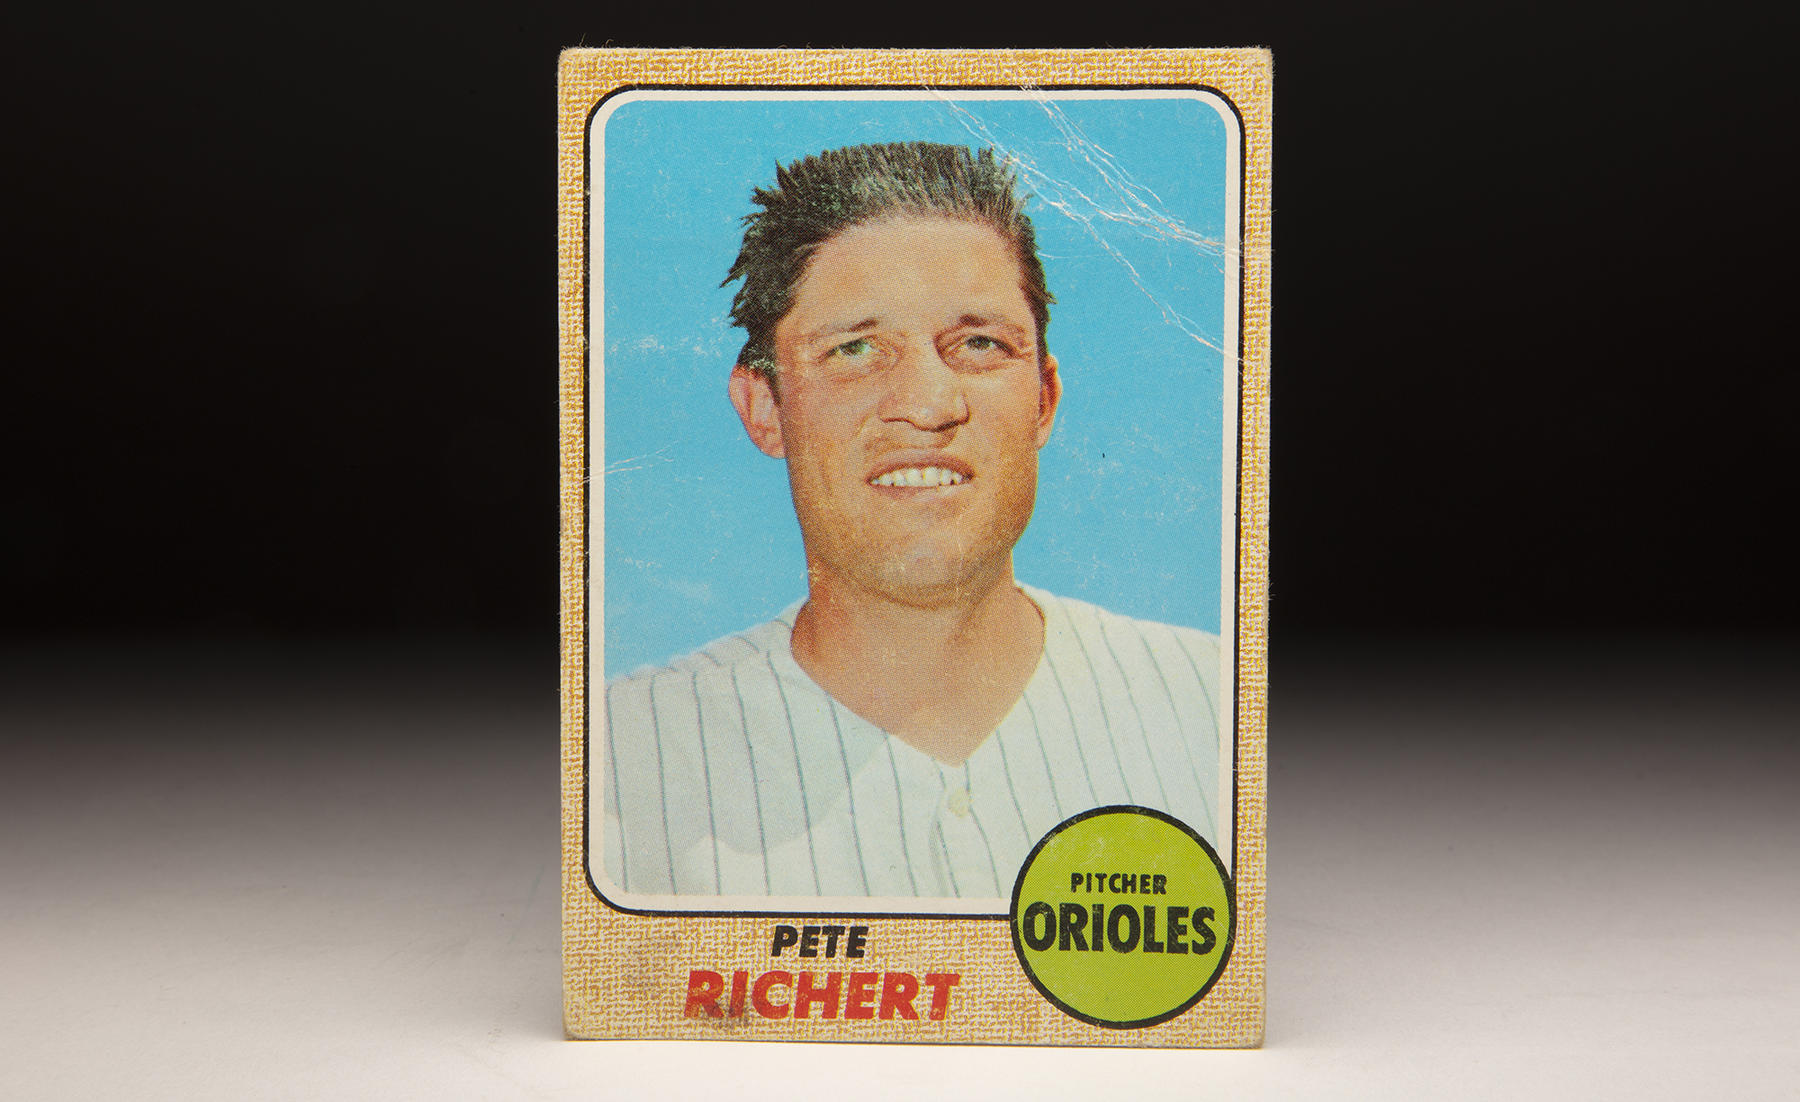 Pete Richert's 1968 Topps card featured a photo that was likely taken when he was a member of the Senators. In 13 big league seasons, Richert won 80 games, saved 51 more and earned two World Series rings. (Milo Stewart Jr./National Baseball Hall of Fame and Museum)